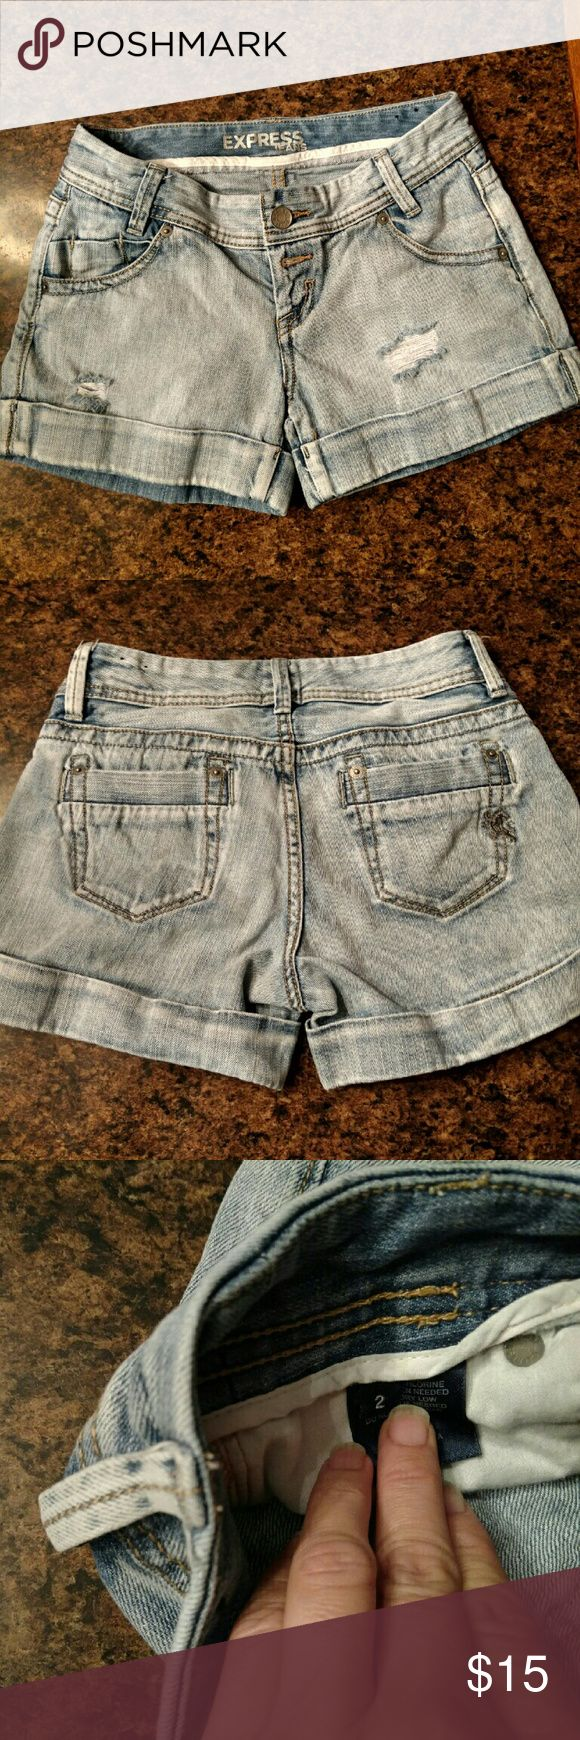 Express Jeans frayed shorts Like new, frays came on the shorts, fly button, size 2, 100% cotton, do comfy Express Jeans Shorts Jean Shorts